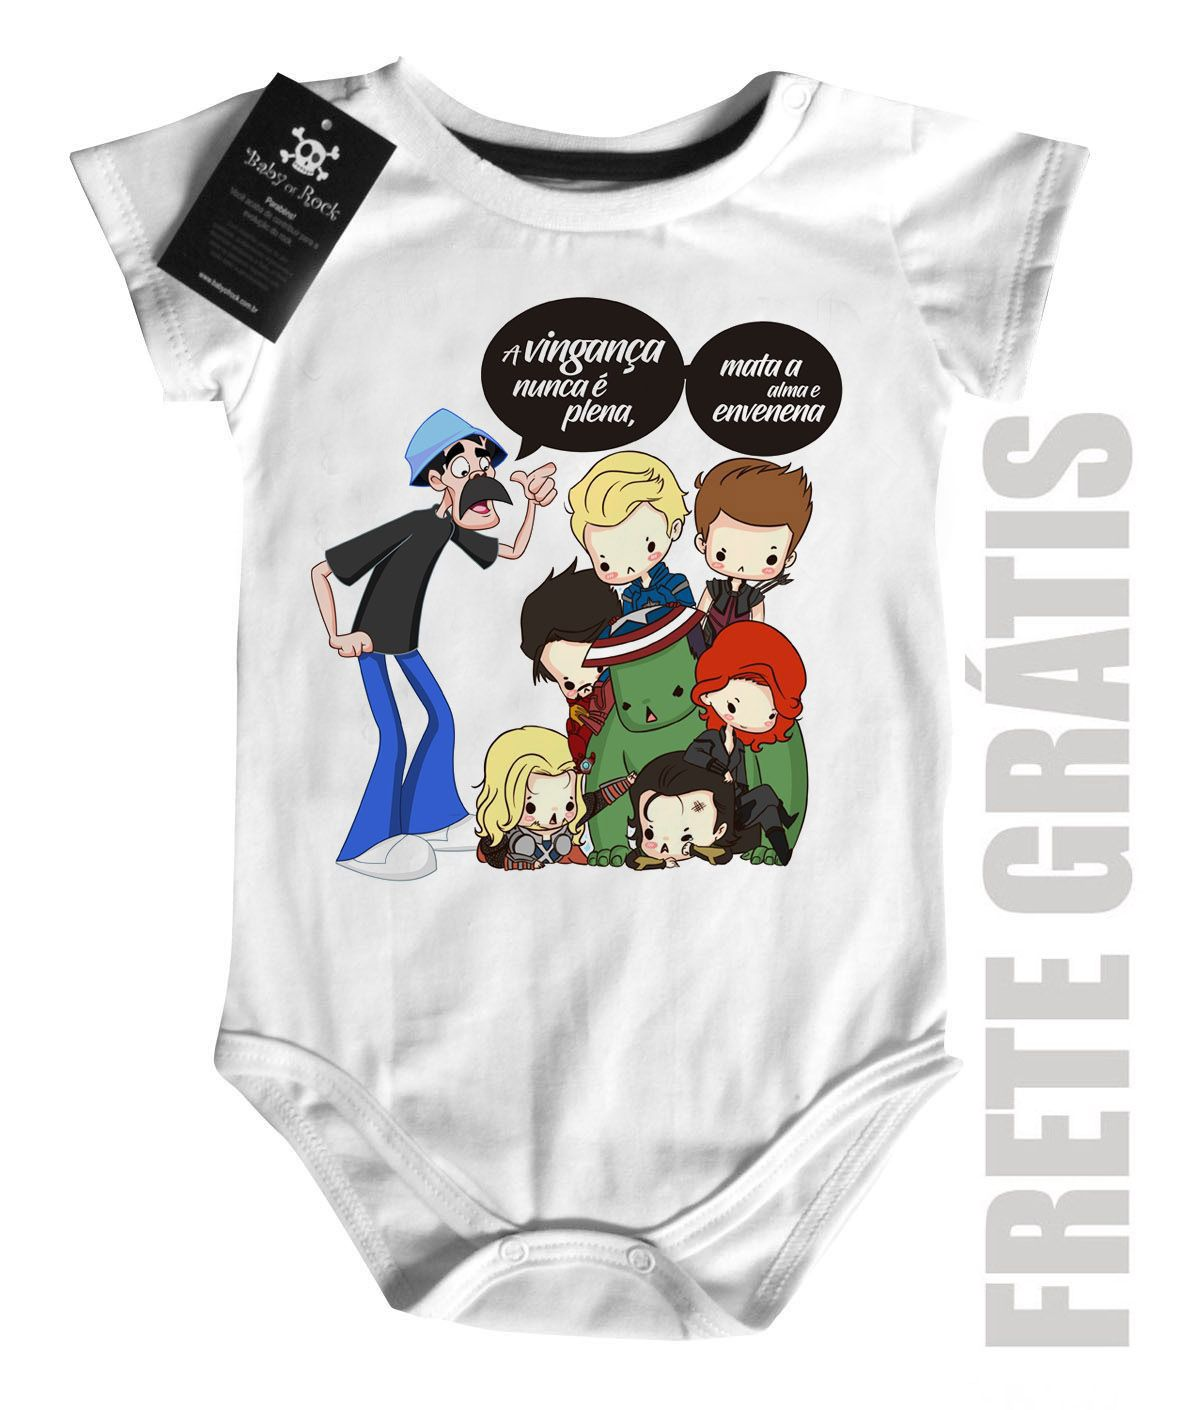 Body  Nerd / Geek  Seu Madruga e os Vingadores- White  - Baby Monster S/A